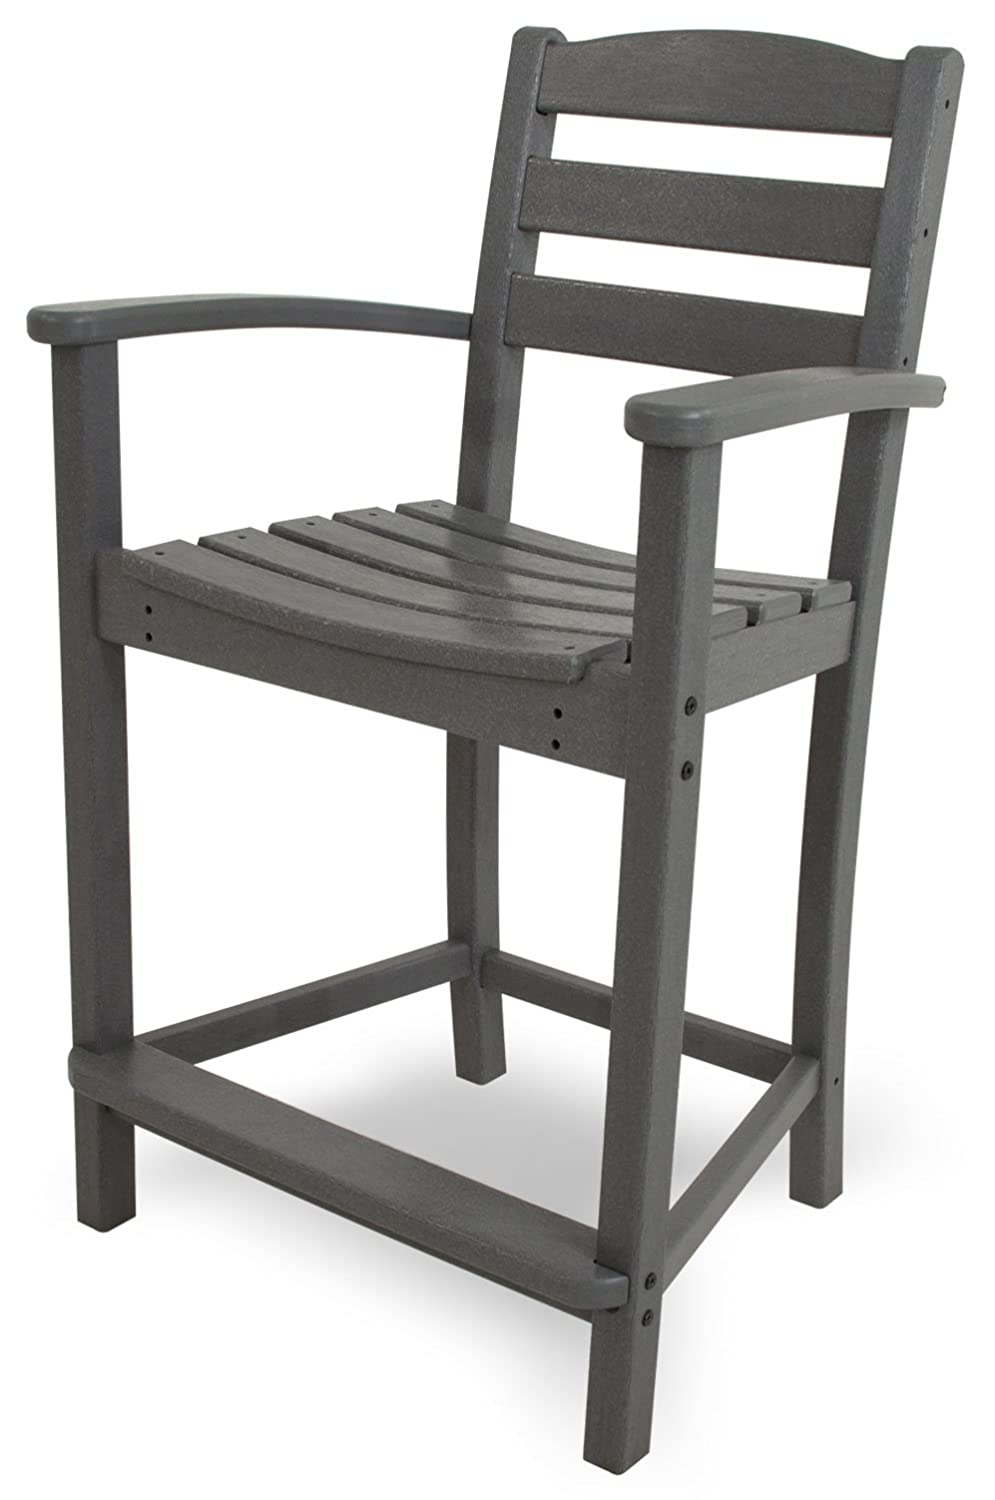 POLYWOOD TD201GY La Casa Caf Counter Arm Chair, Slate Grey